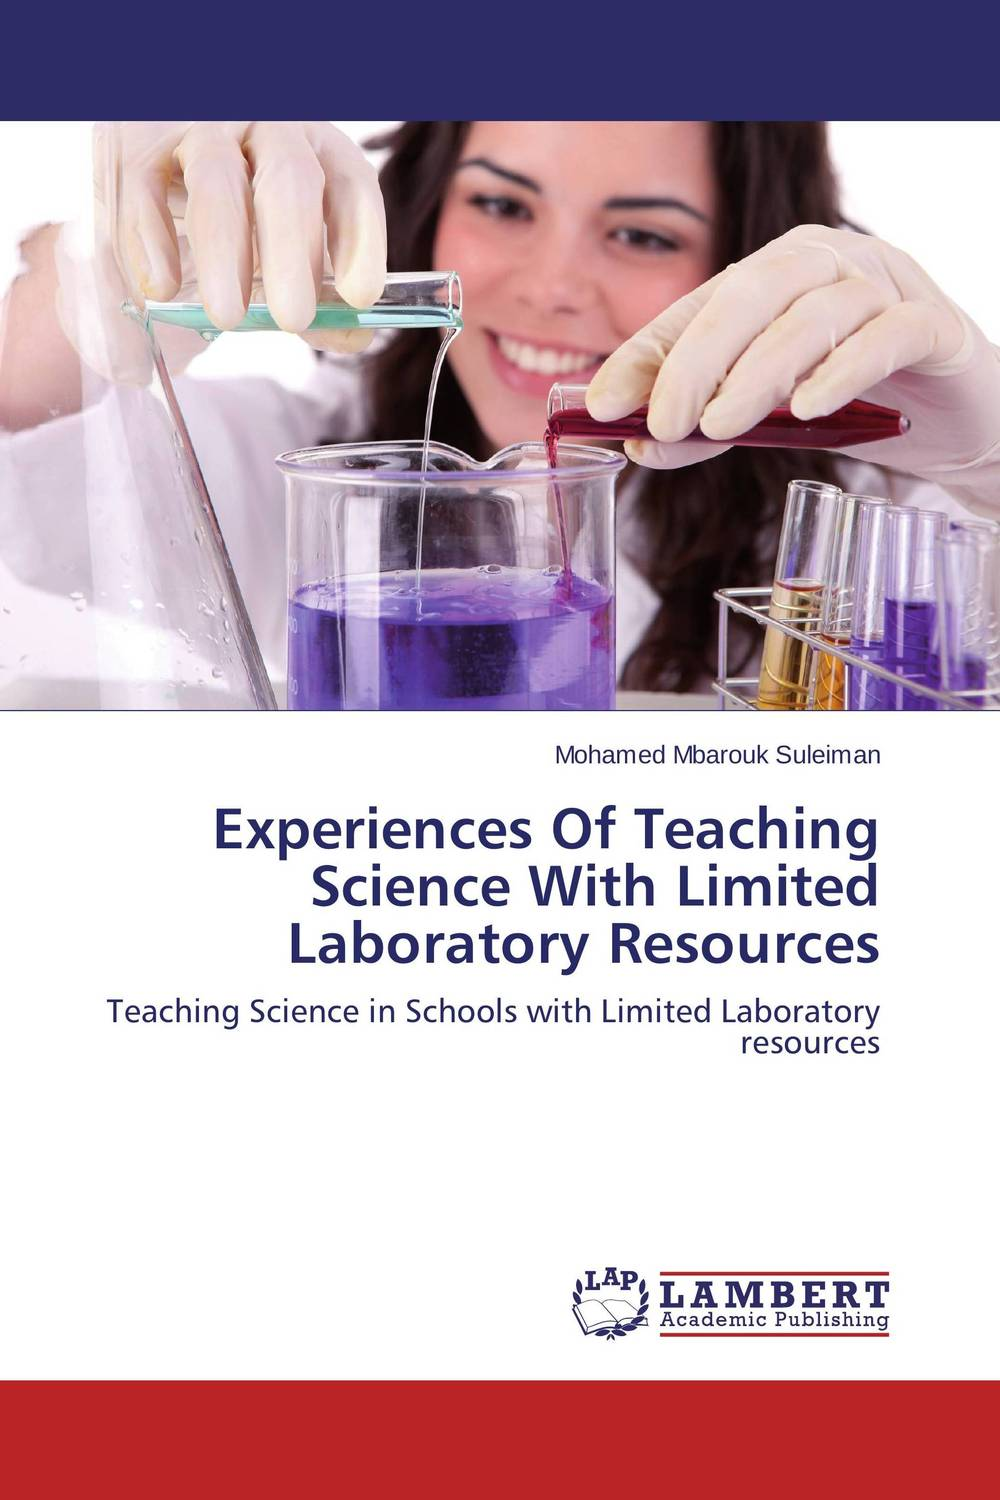 Experiences Of Teaching Science With Limited Laboratory Resources learning resources набор пробей